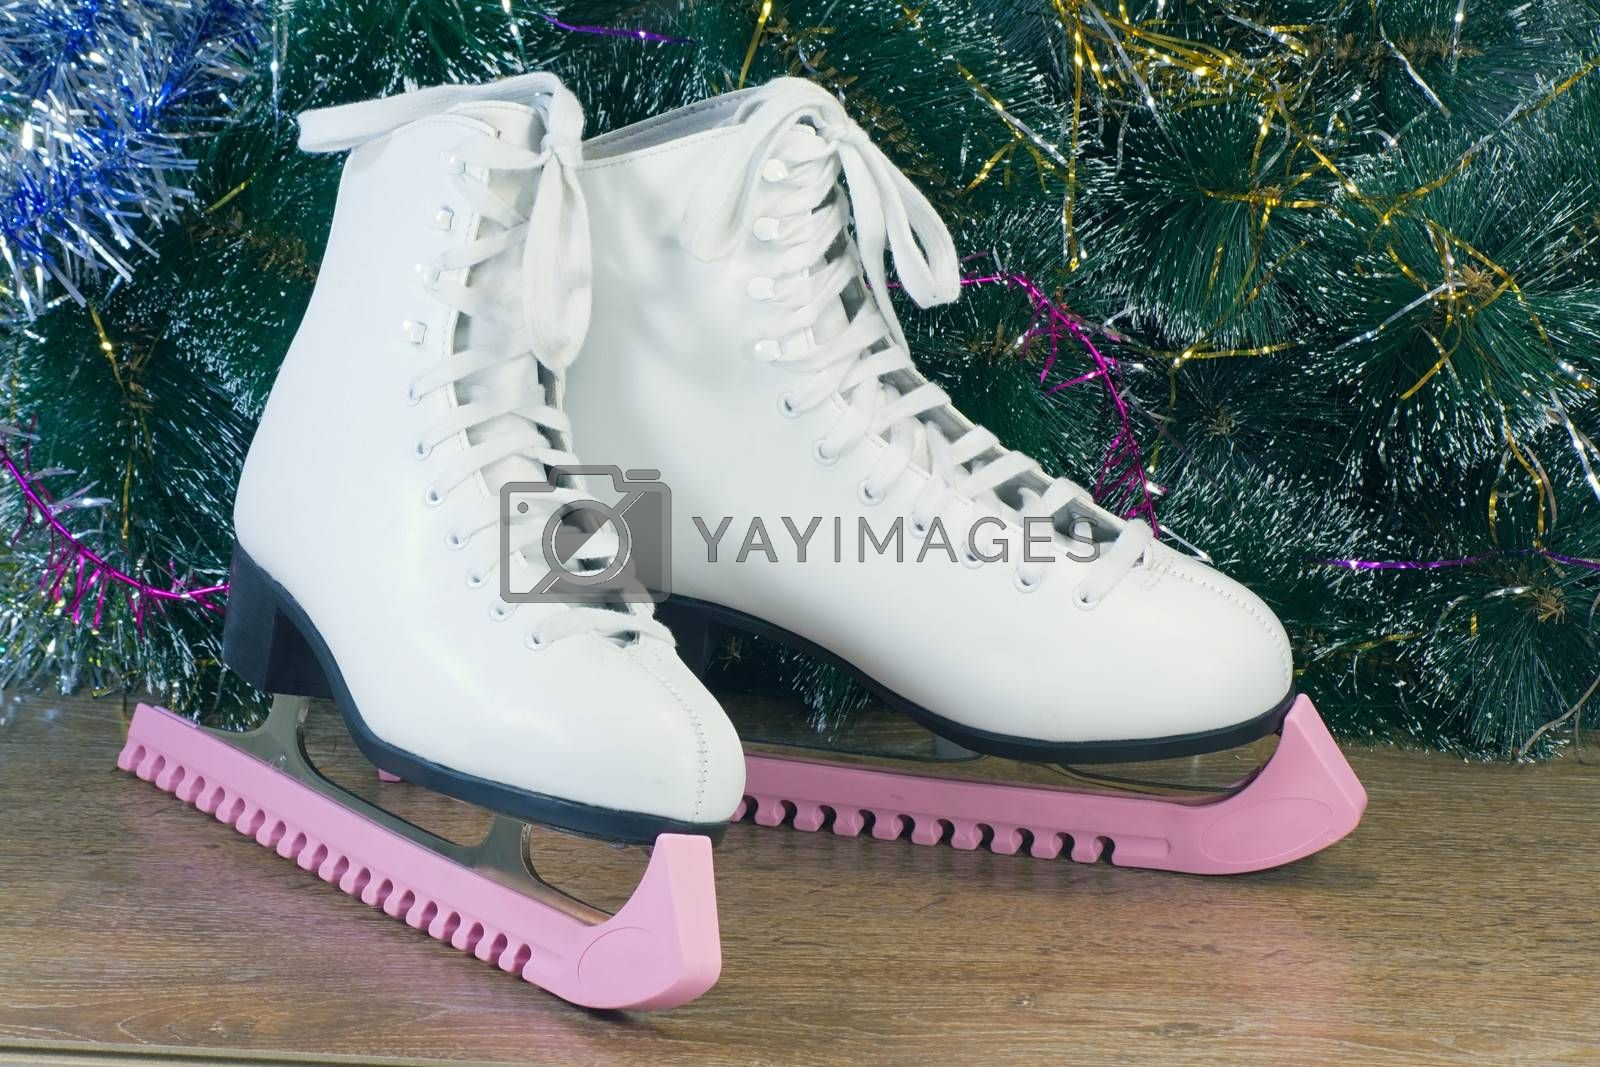 Gift for New year and Christmas - womens skates with beautiful white shoes.